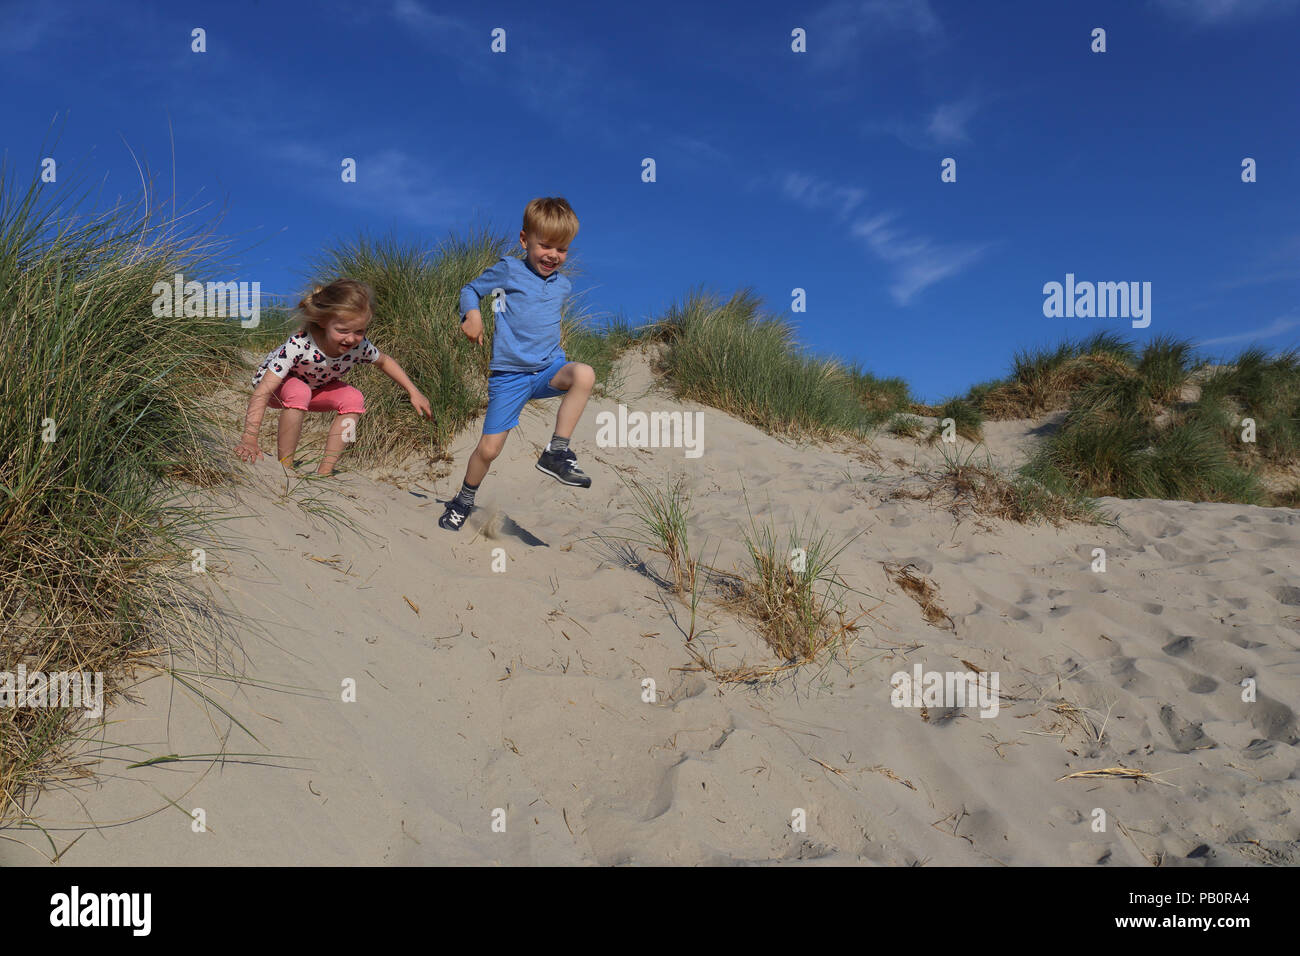 two-children-enjoying-themselves-on-the-